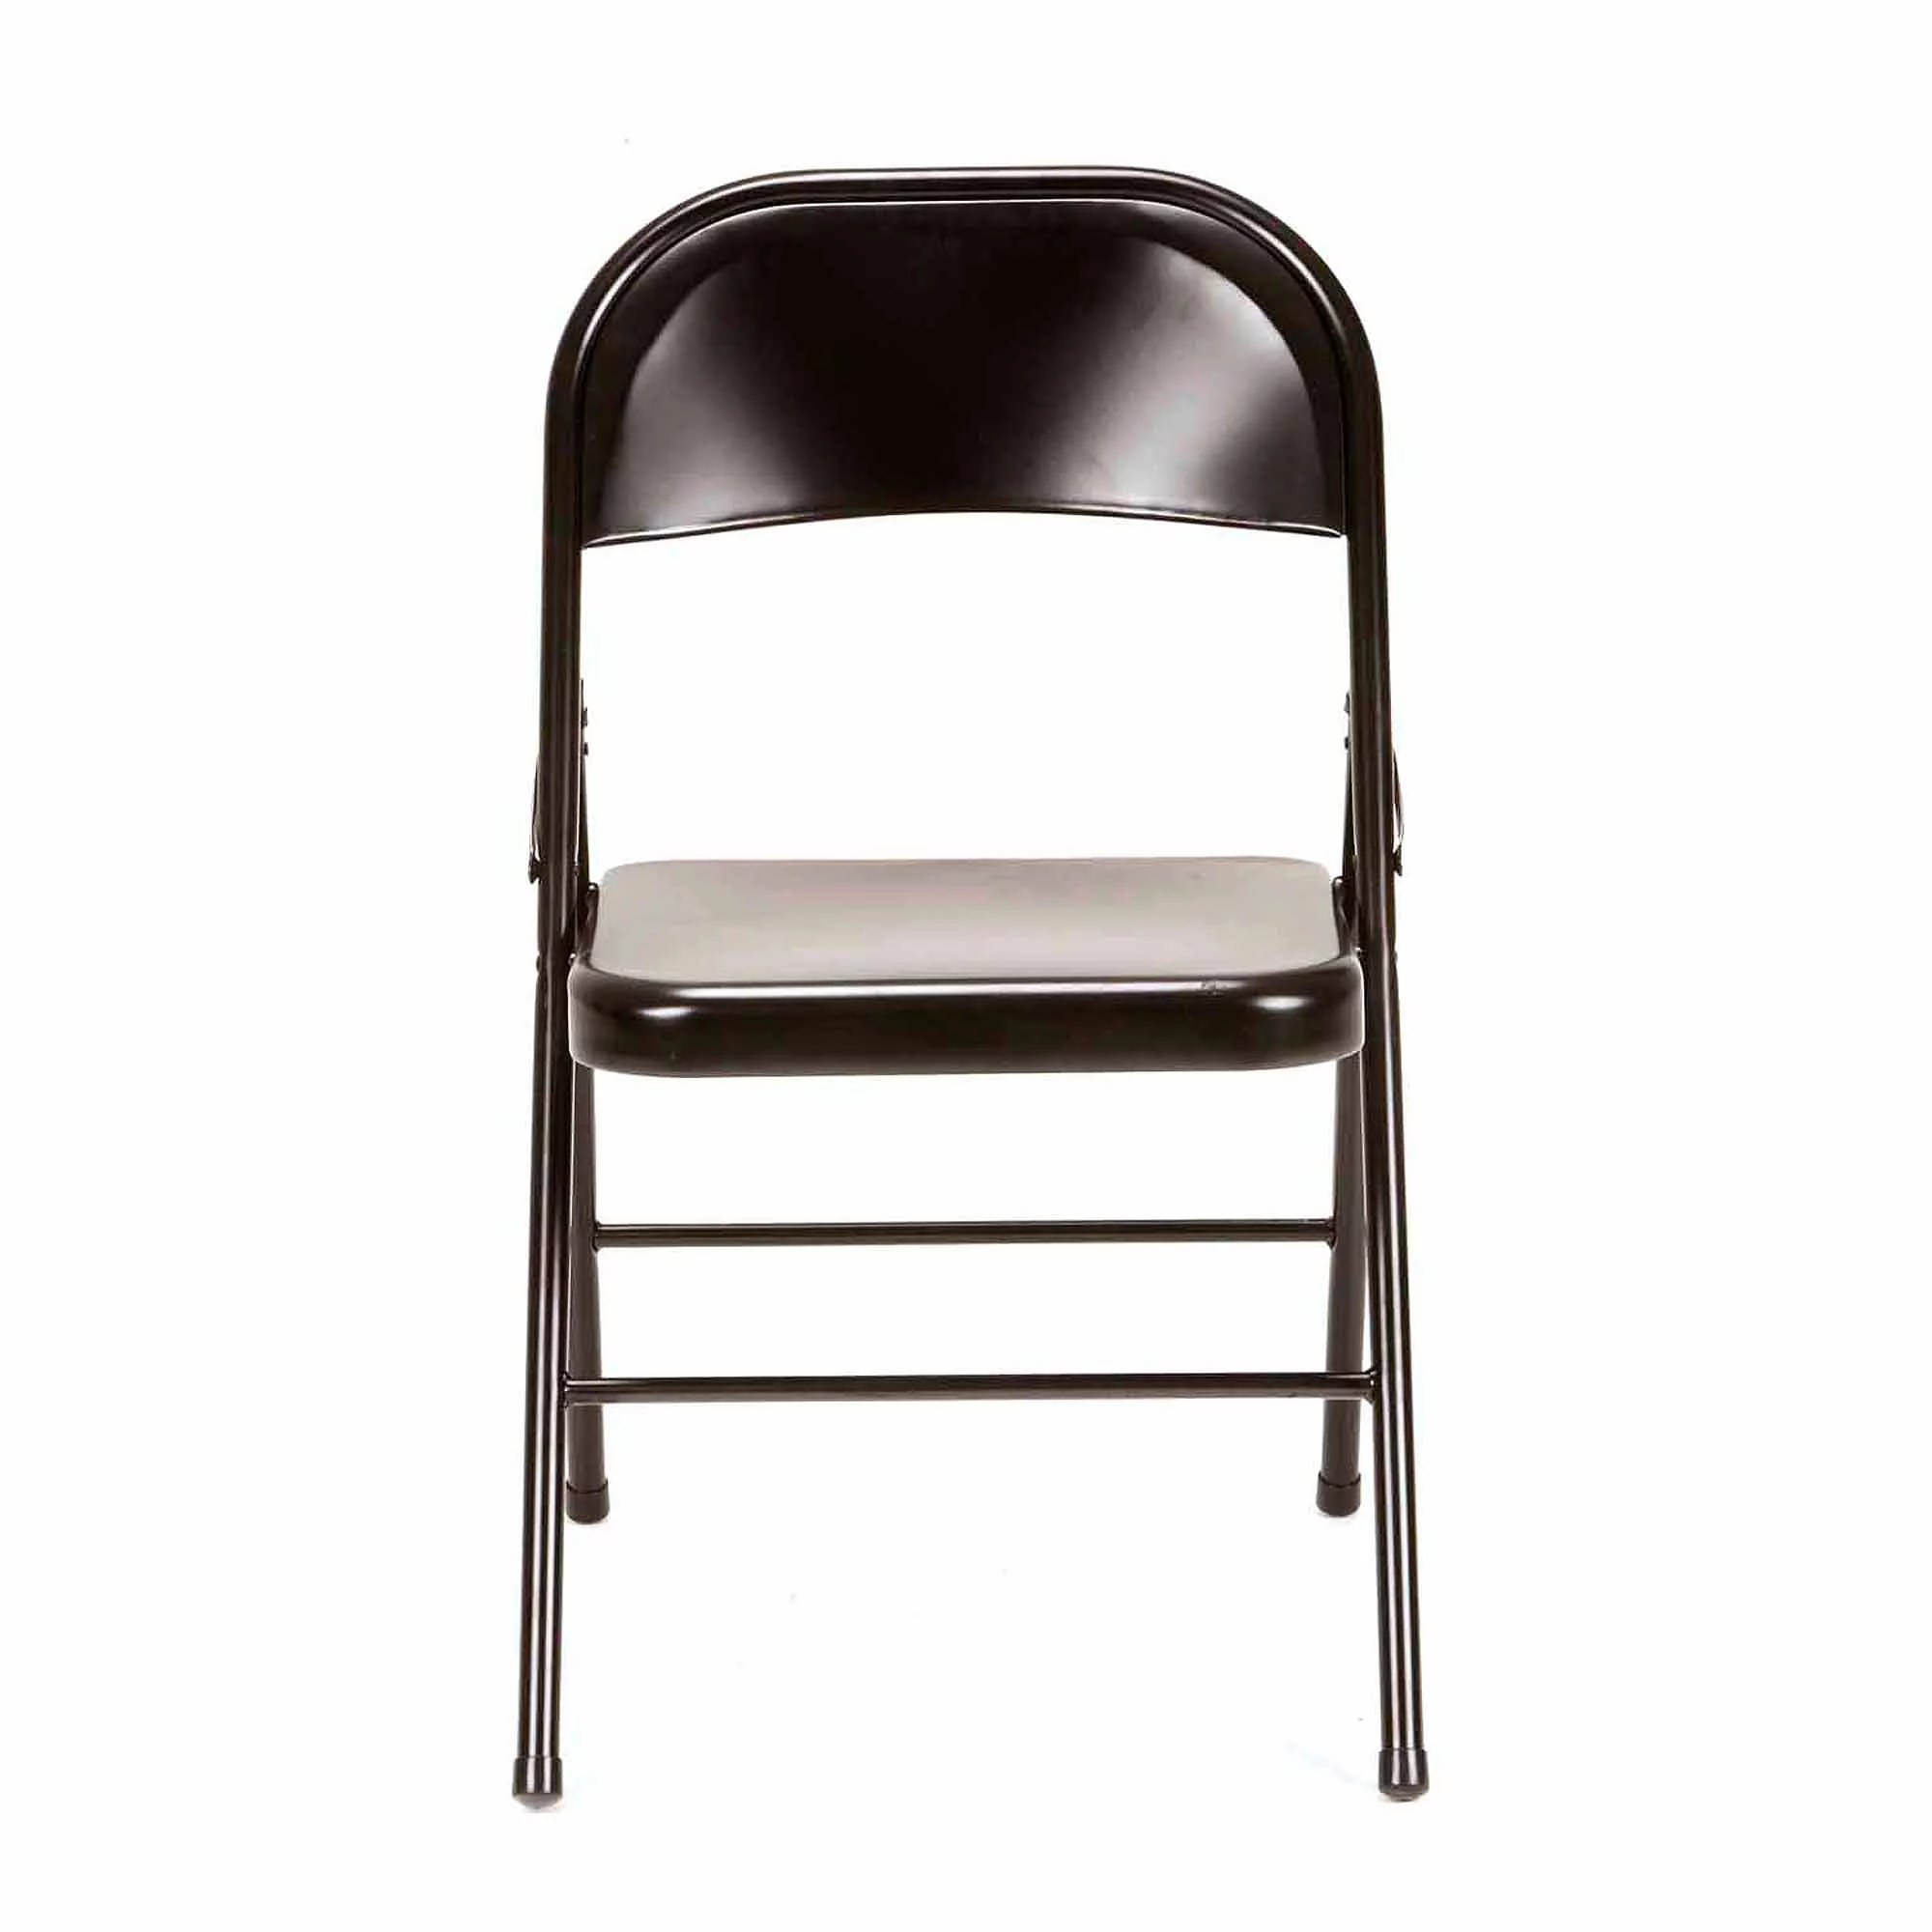 Steel Folding Chair Mainstays Steel Chair Set Of 4 Black Folding Metal